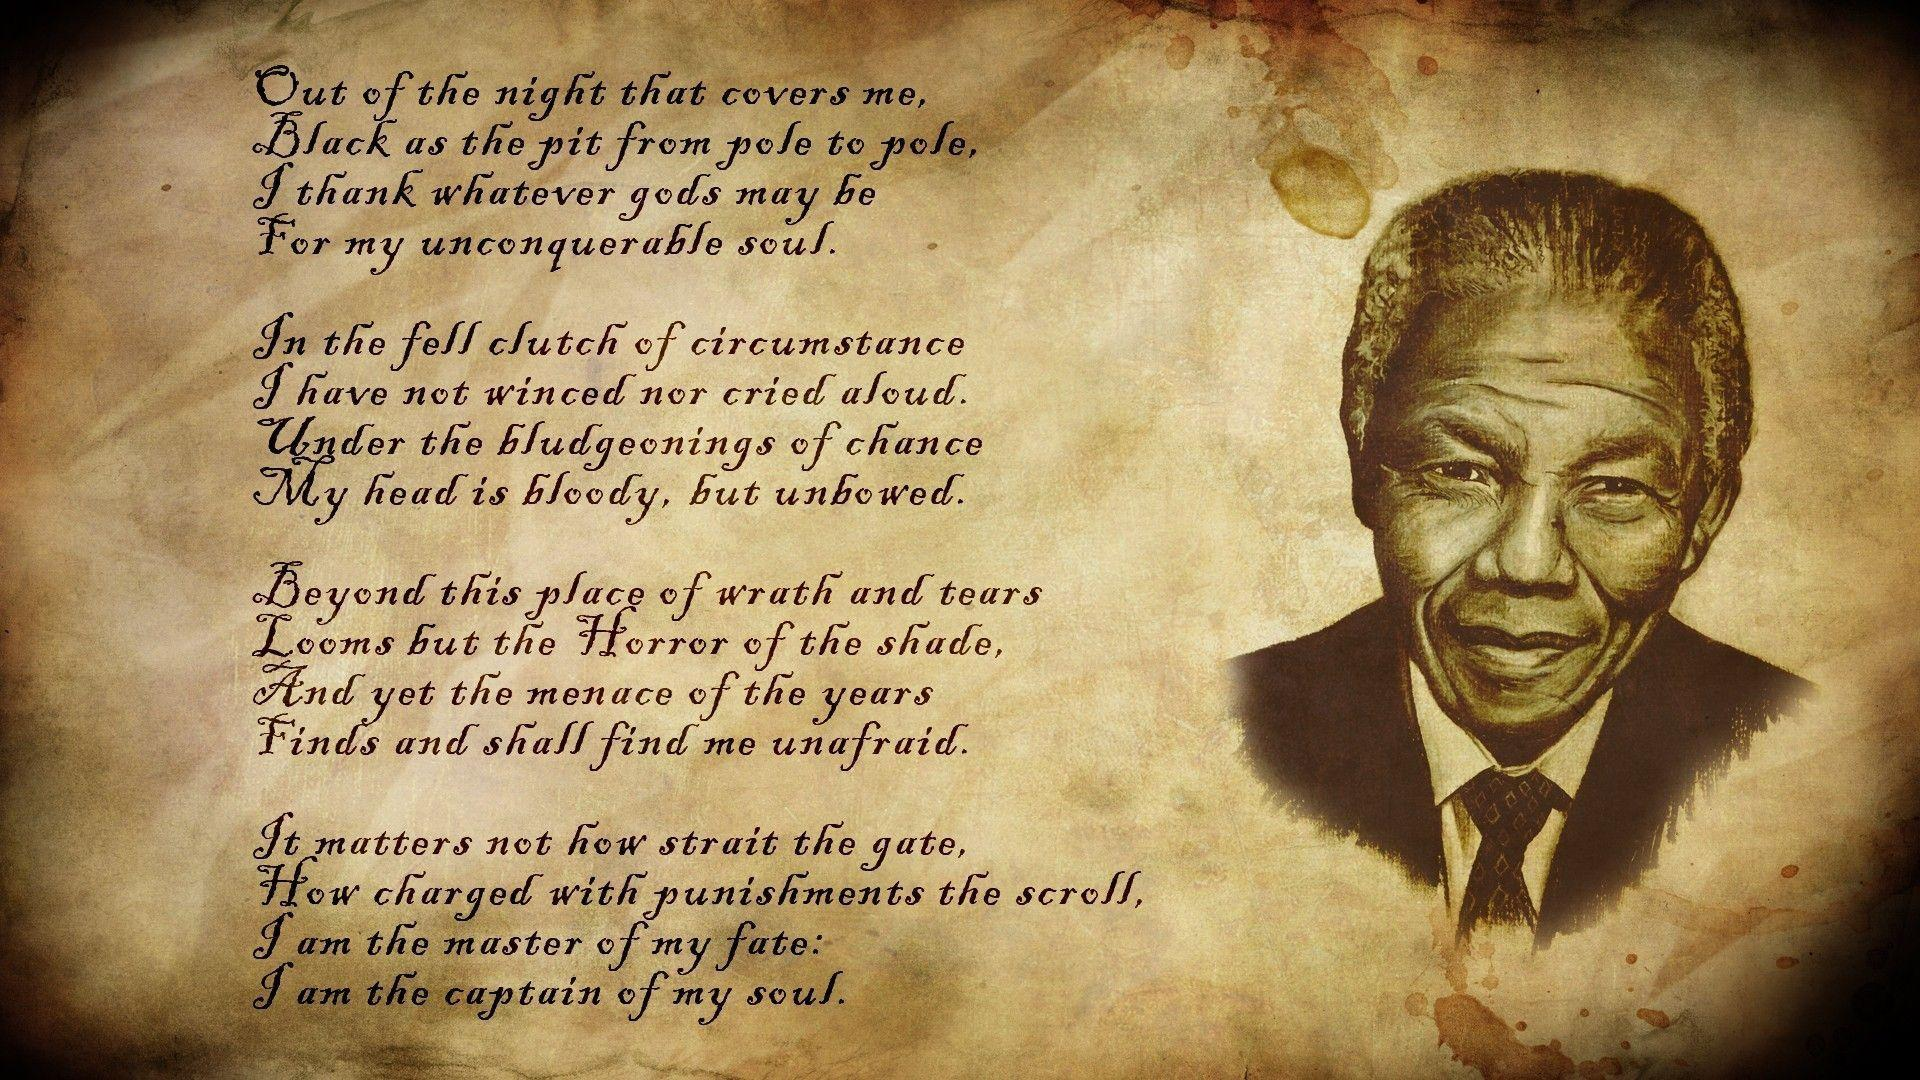 Nelson Mandela photos in high quality 1080 - HD Wallpaper